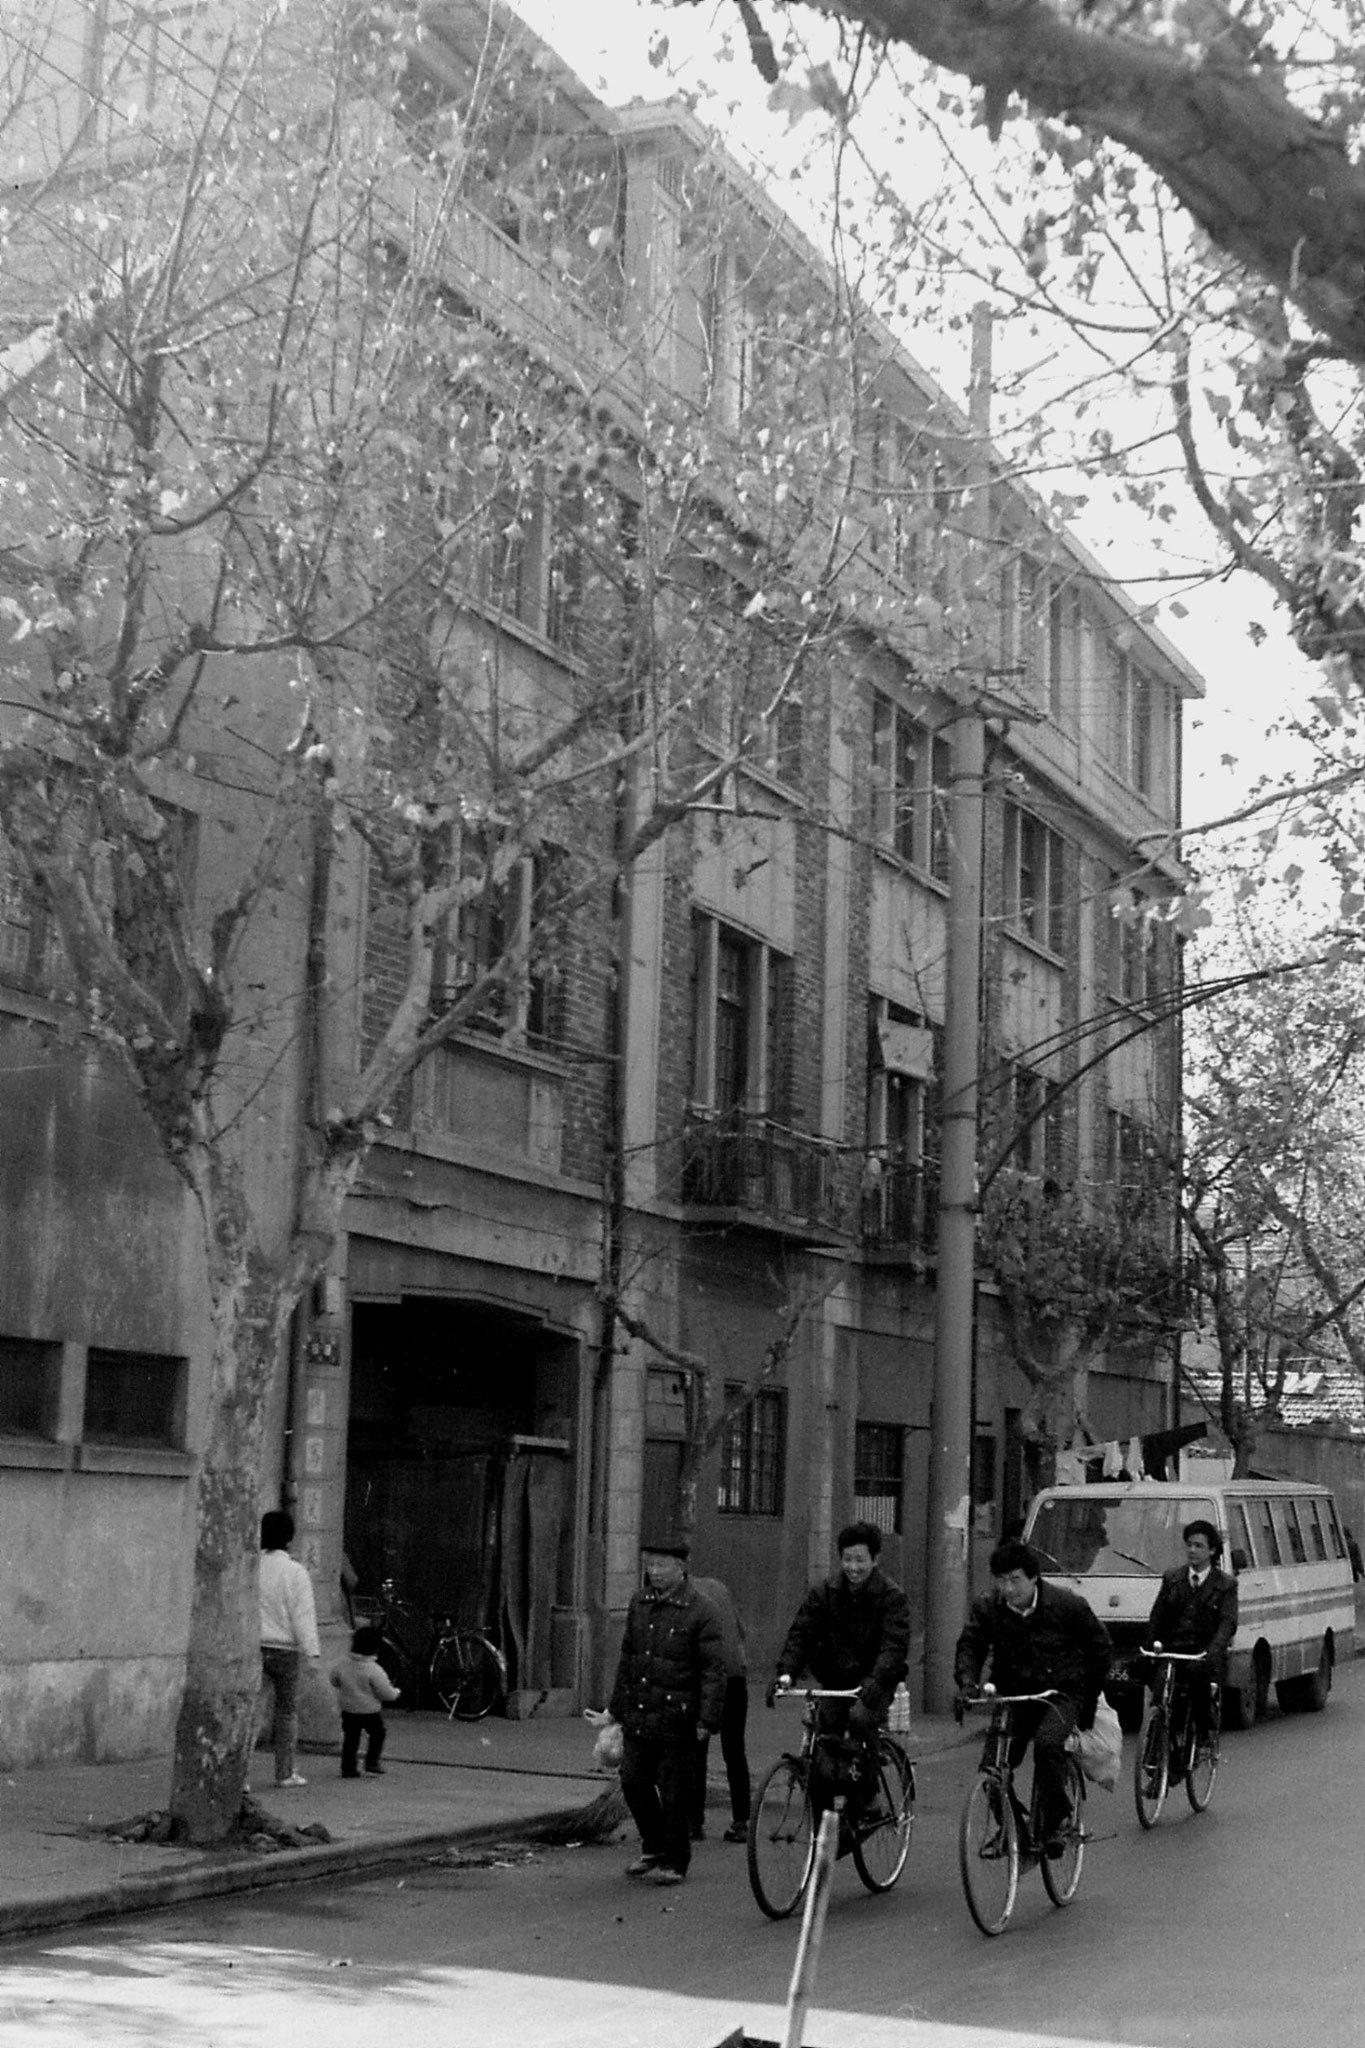 15/12/1988: 3: Nanchang Road